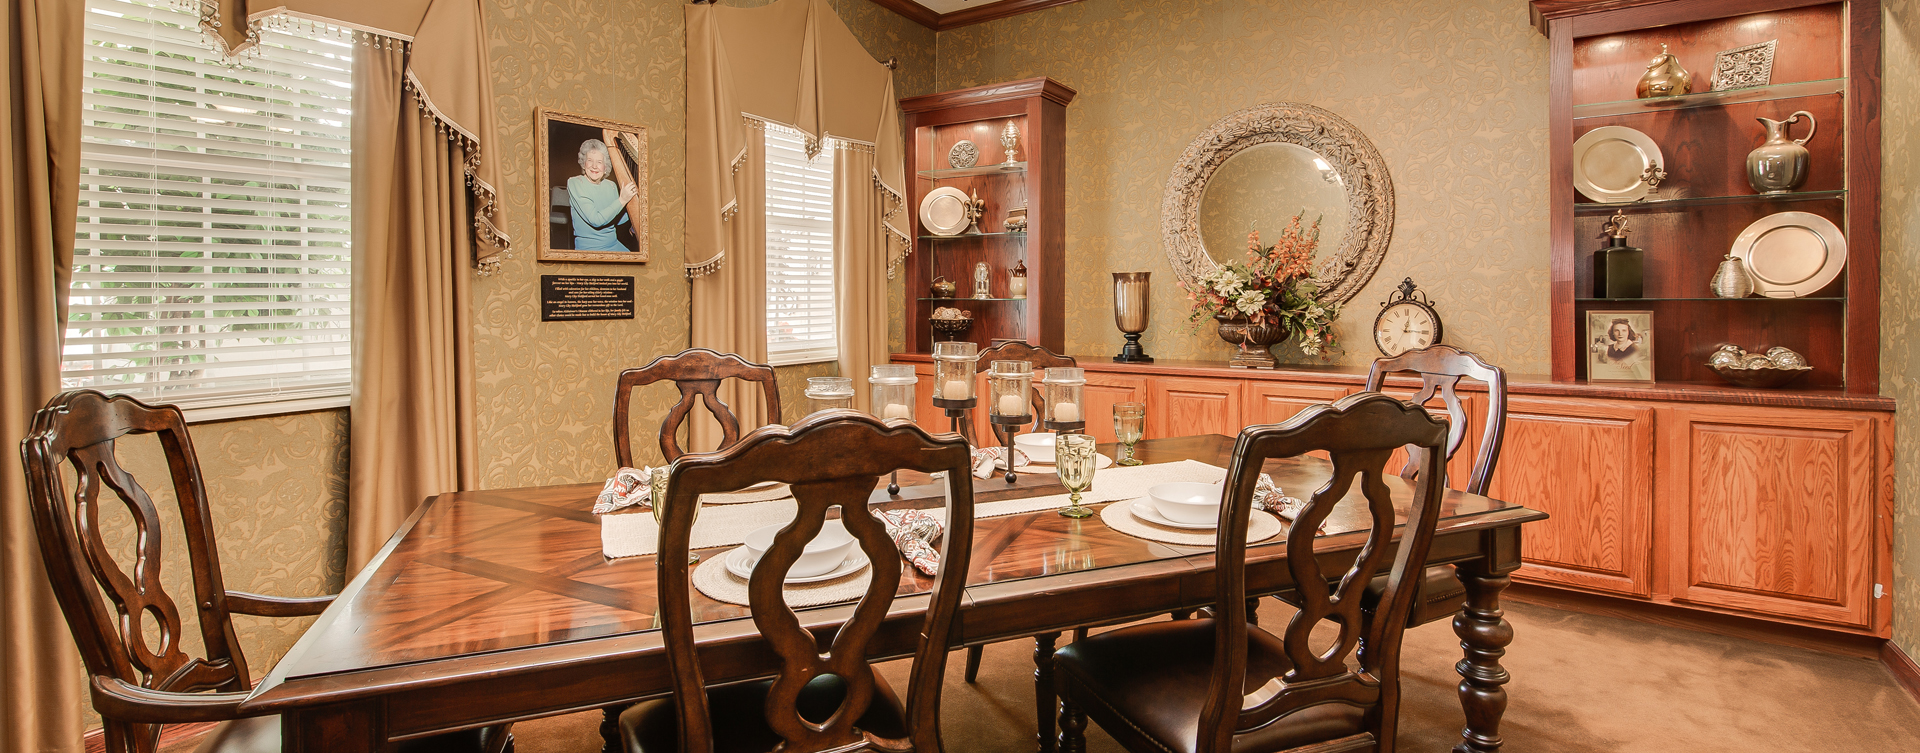 Food is best when shared with family and friends in the private dining room at Bickford of Portage